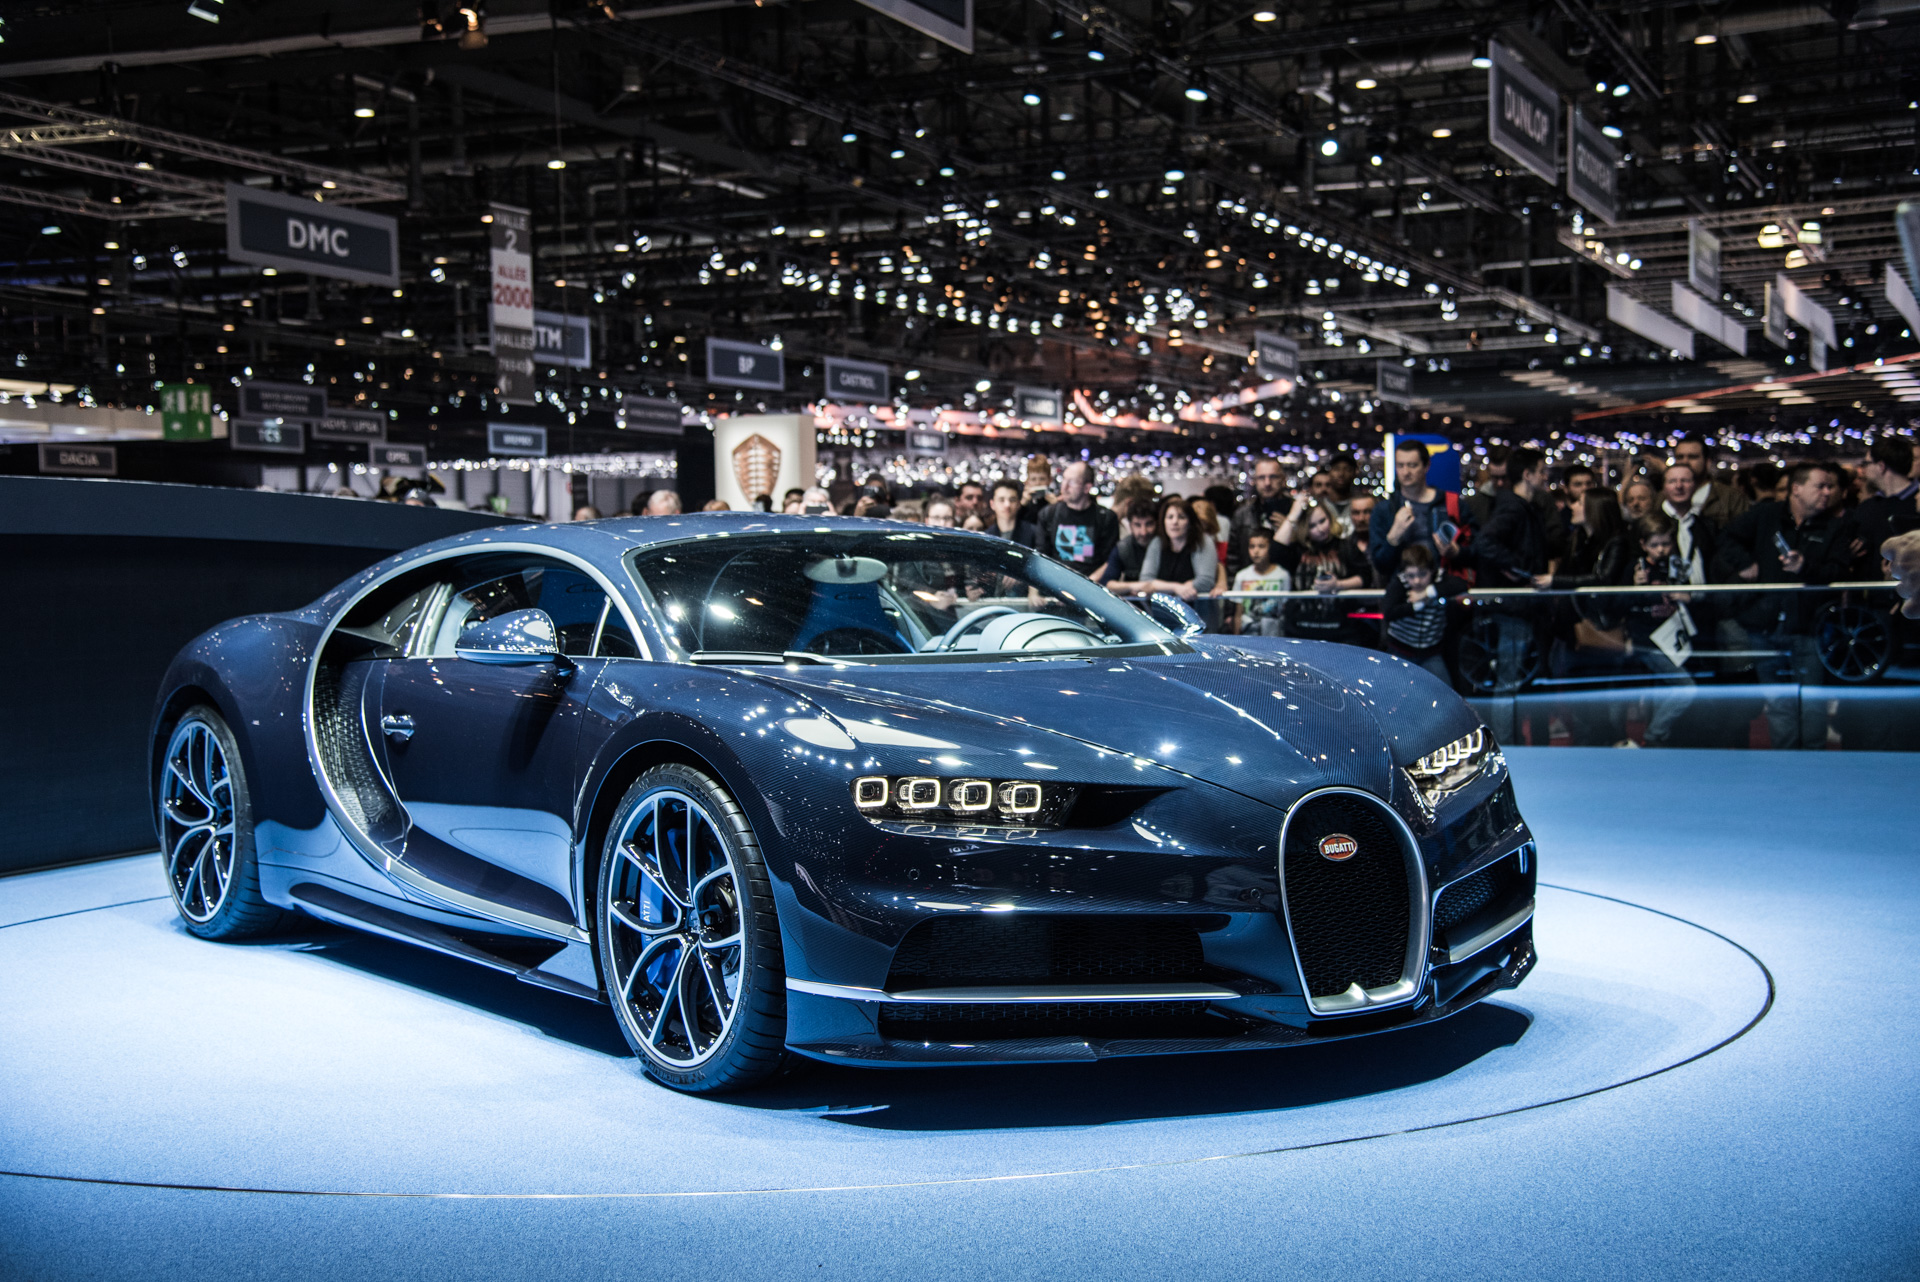 geneva-international-motor-show-igor-sinitsin-116